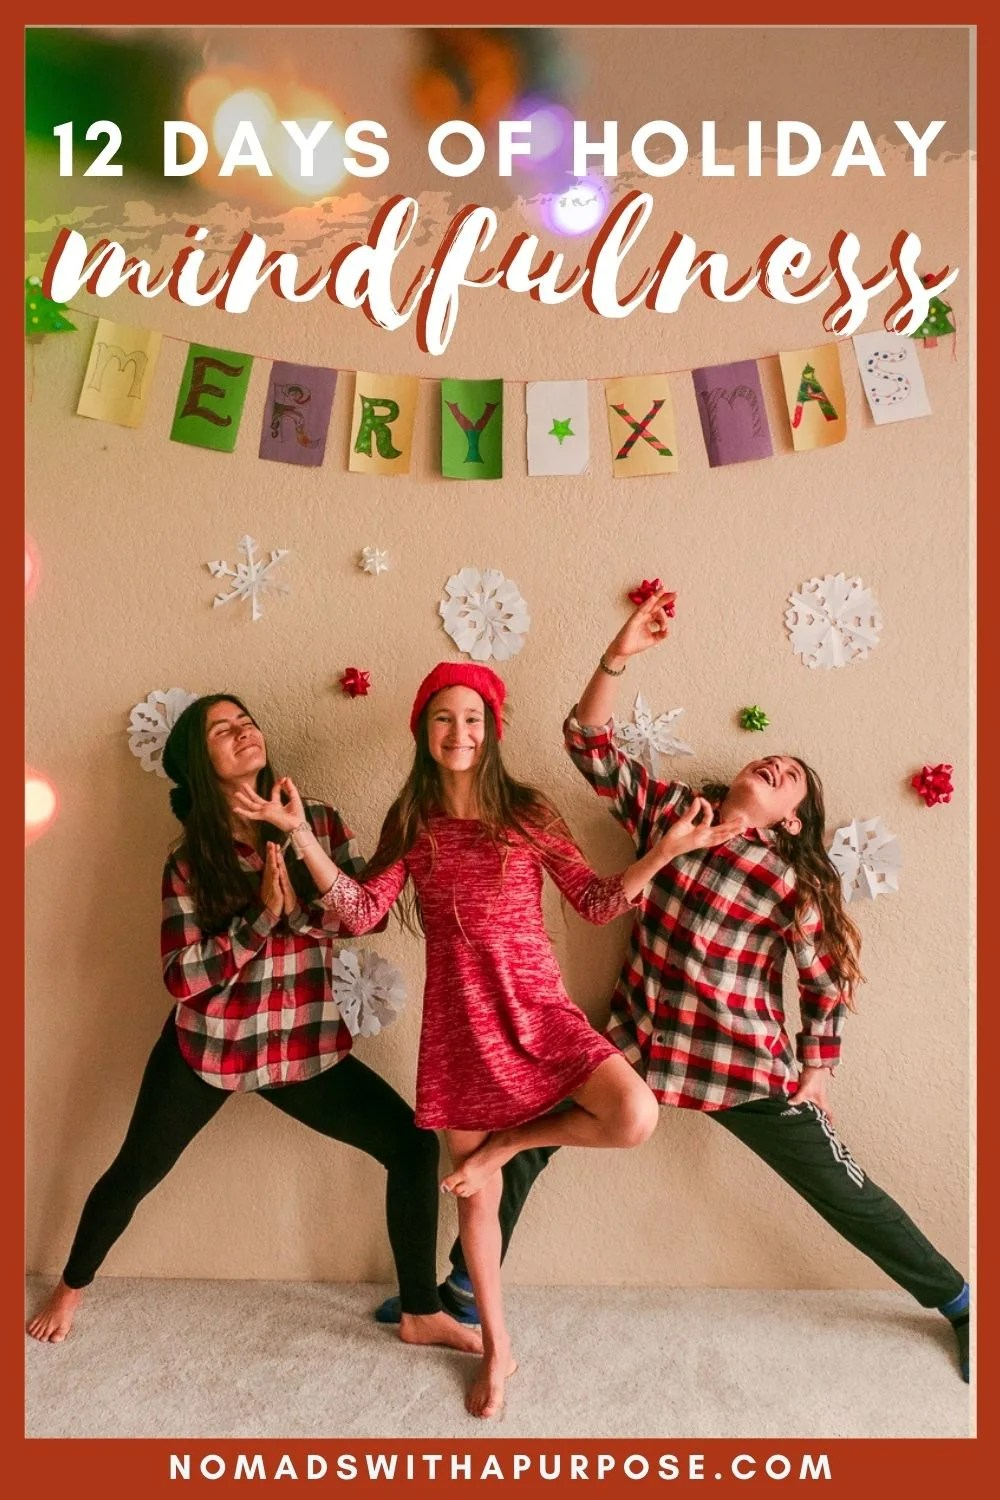 Holiday Mindfulness Activities For Kids